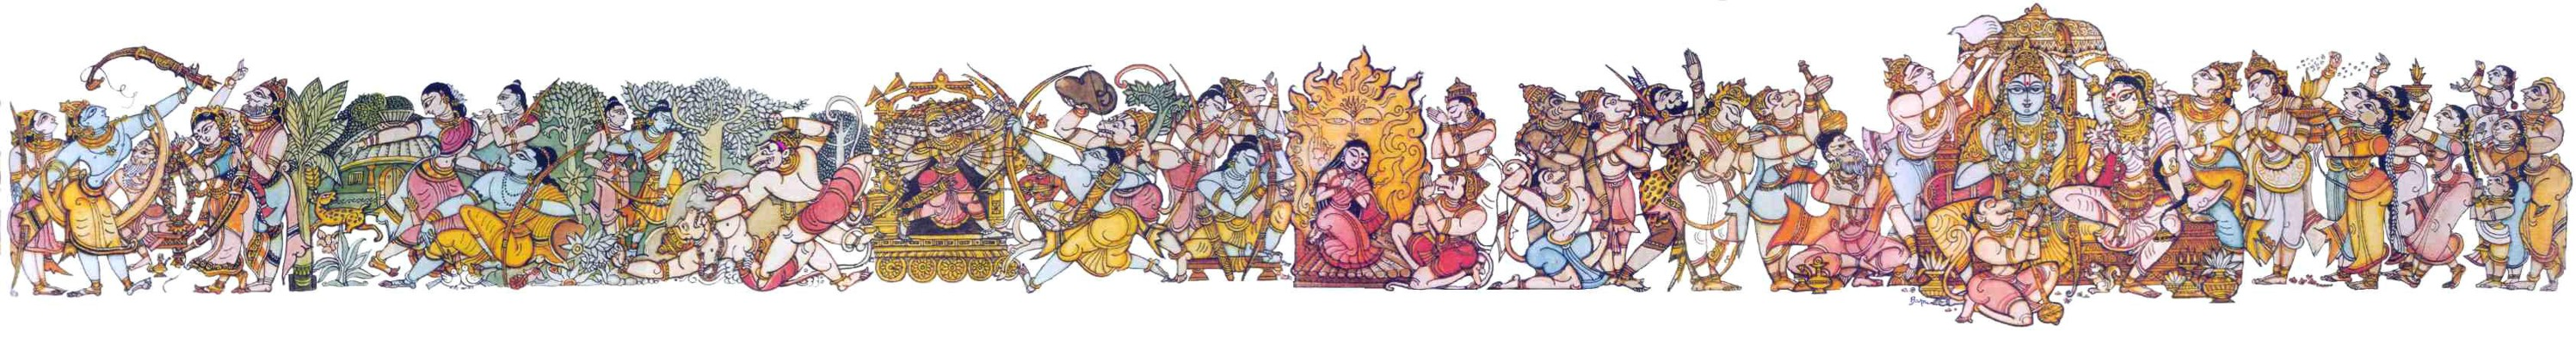 an analysis of the characters of nortons version of valmikis ramayana